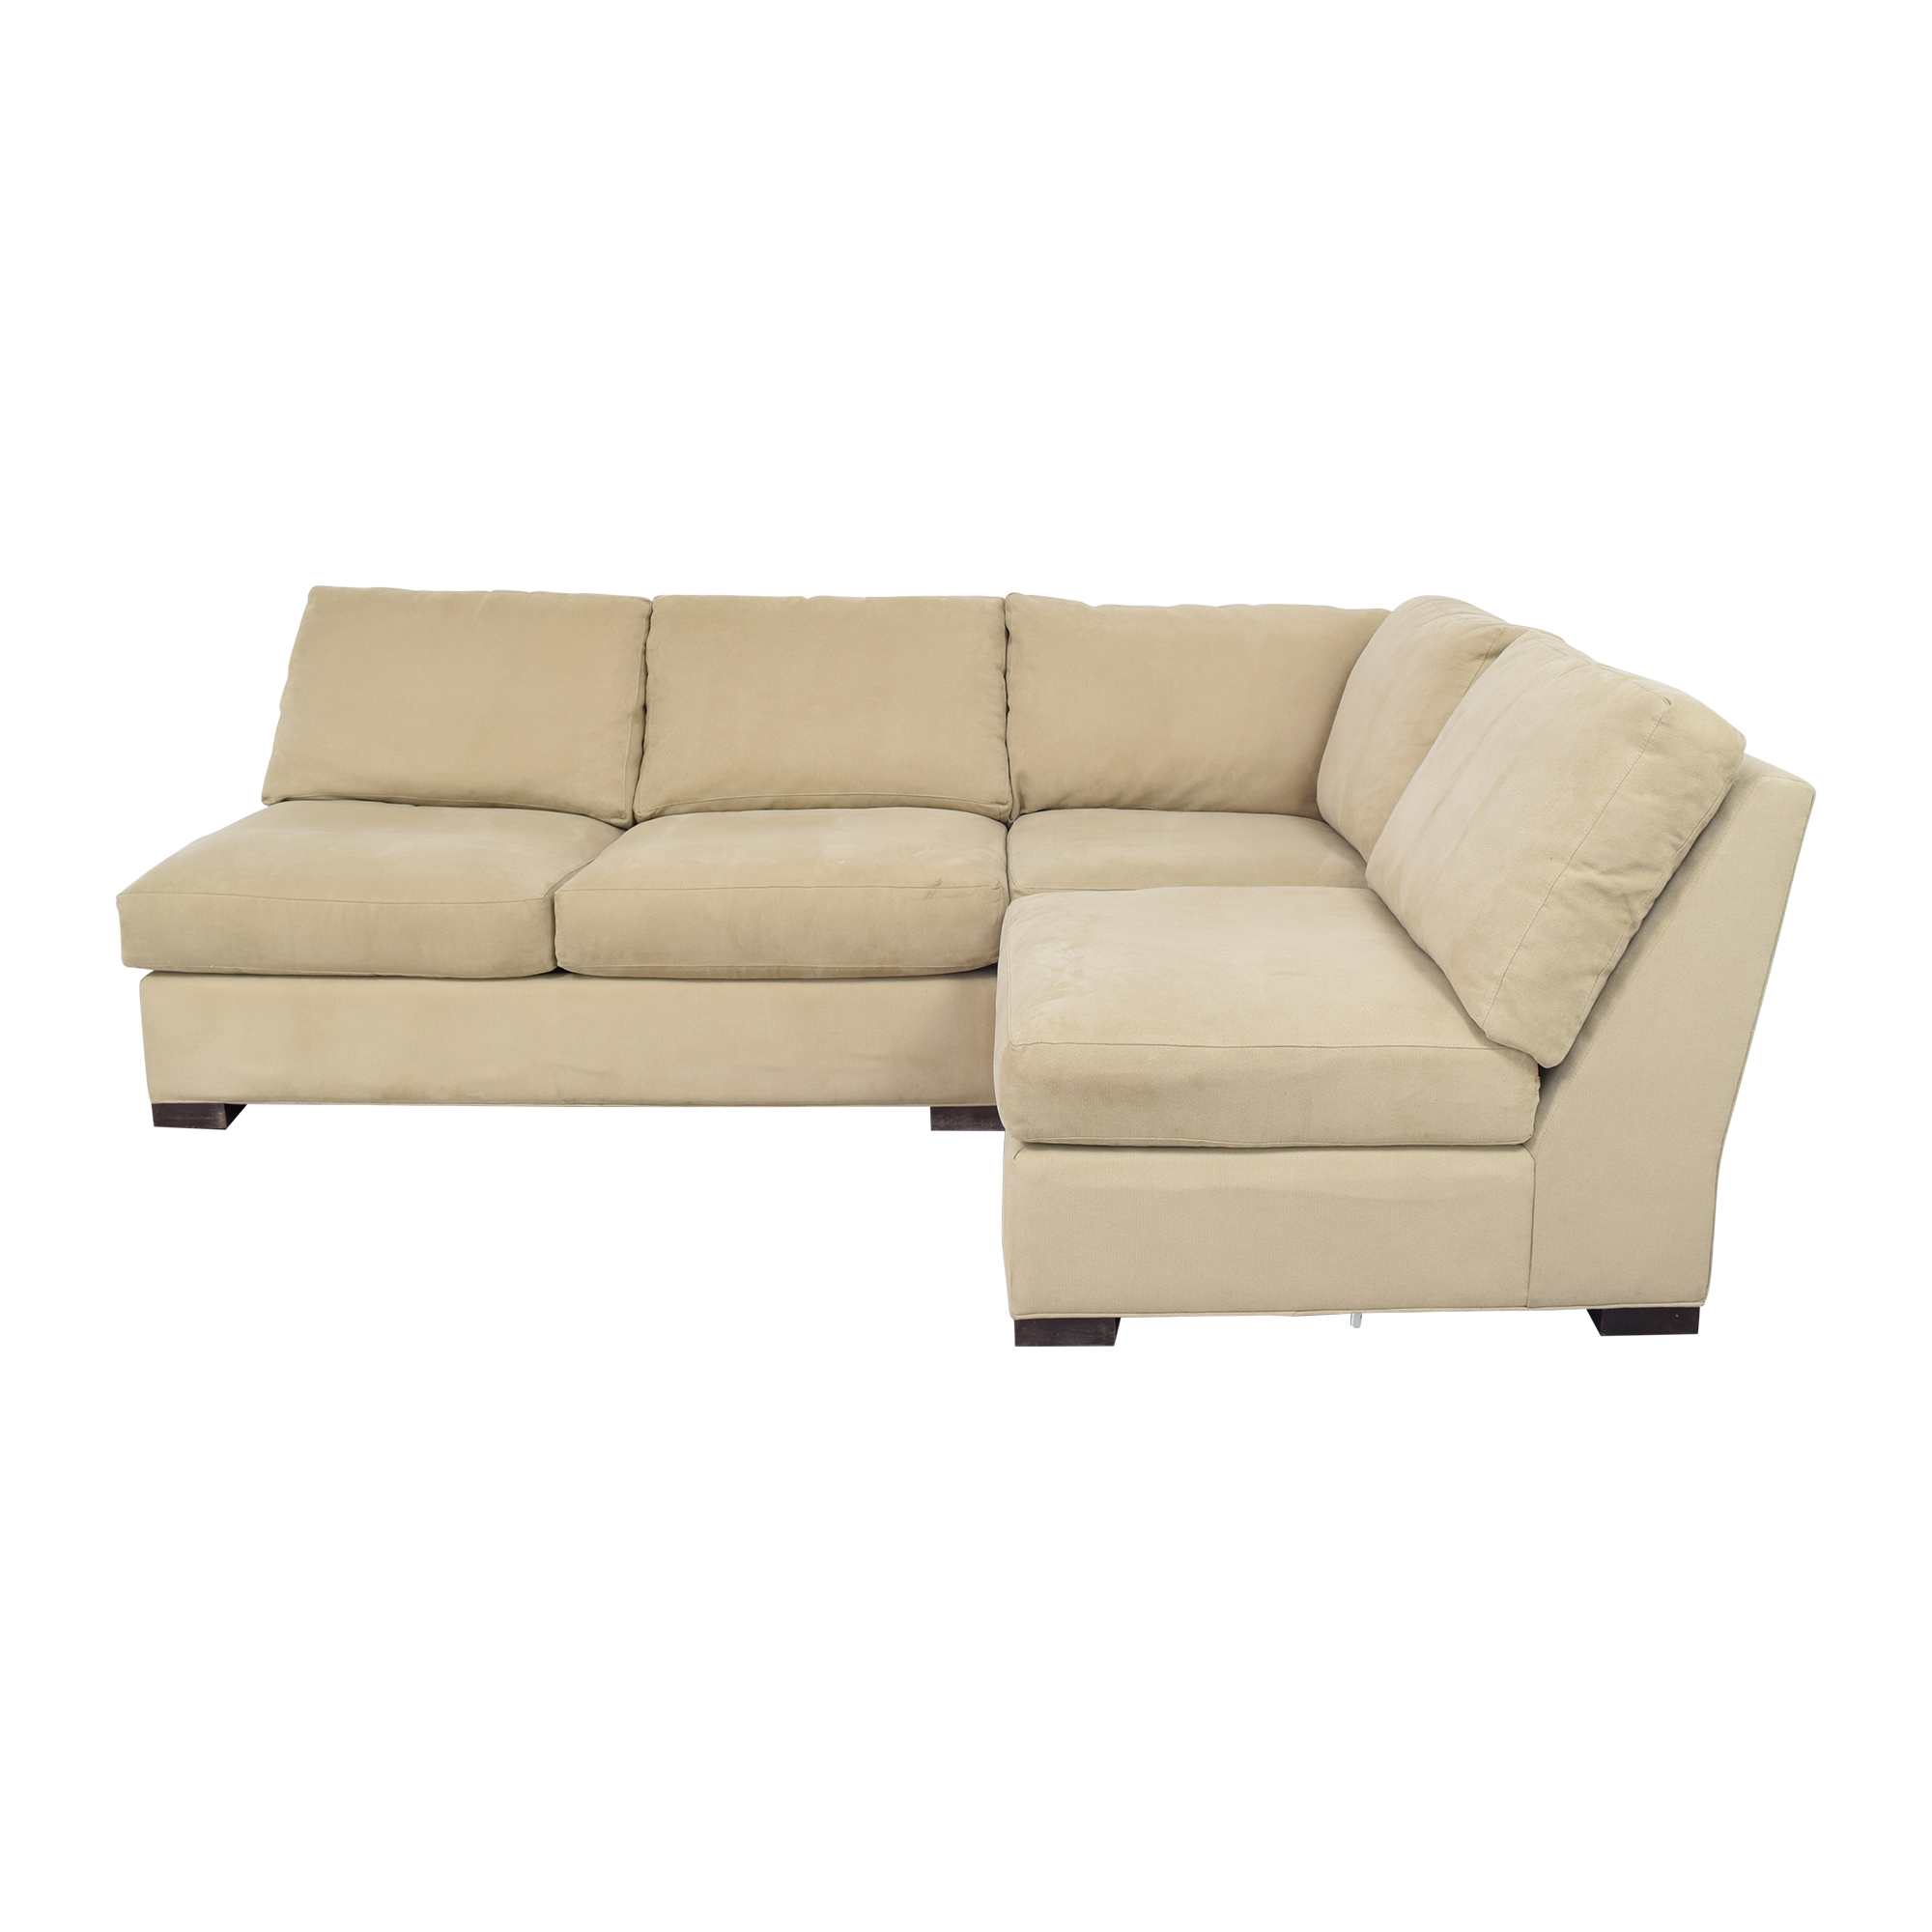 Crate & Barrel Crate & Barrel Sectional Sofa for sale